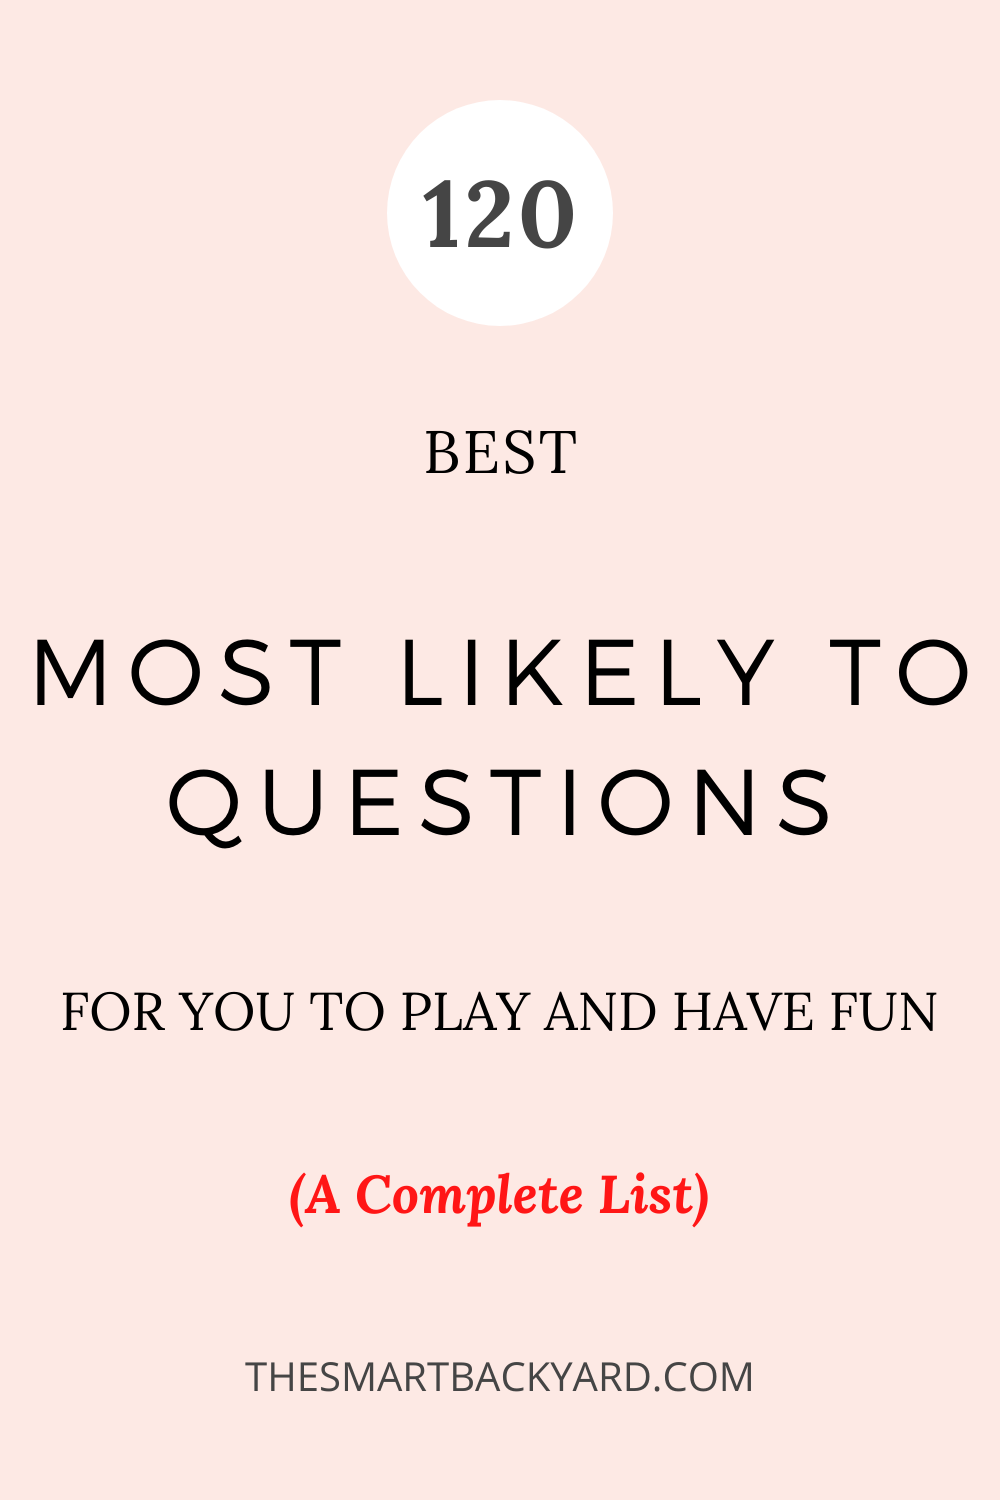 120 Best Who S Most Likely To Questions That Are Pure Fun This Or That Questions Pure Fun Flirty Questions